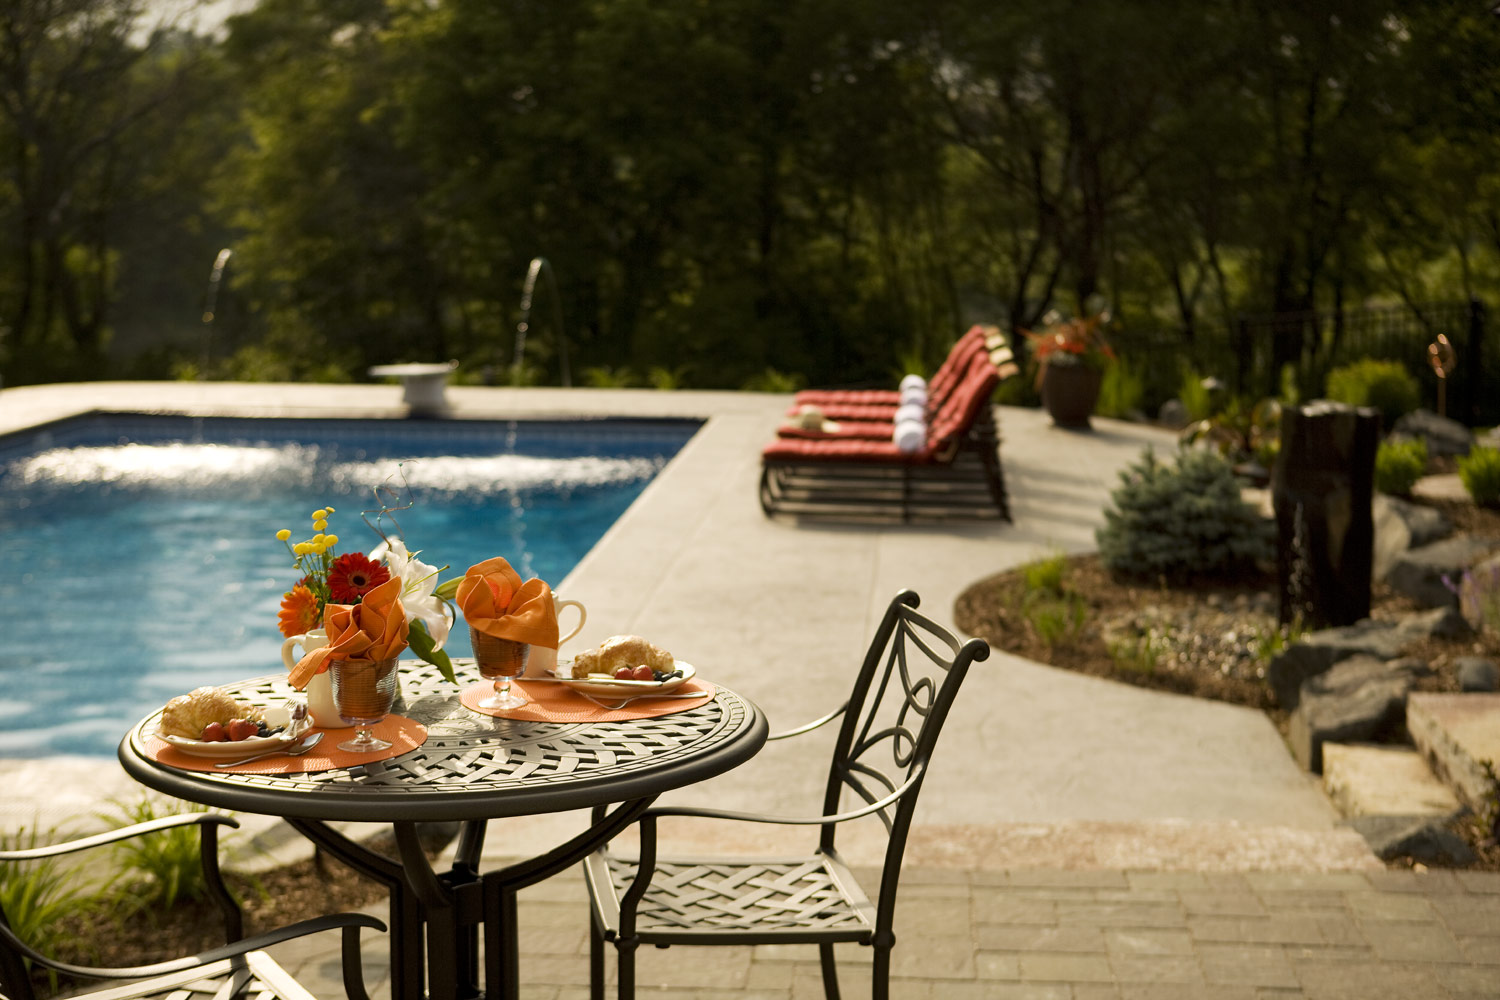 Woodbury, MN patio and pool Landscape design